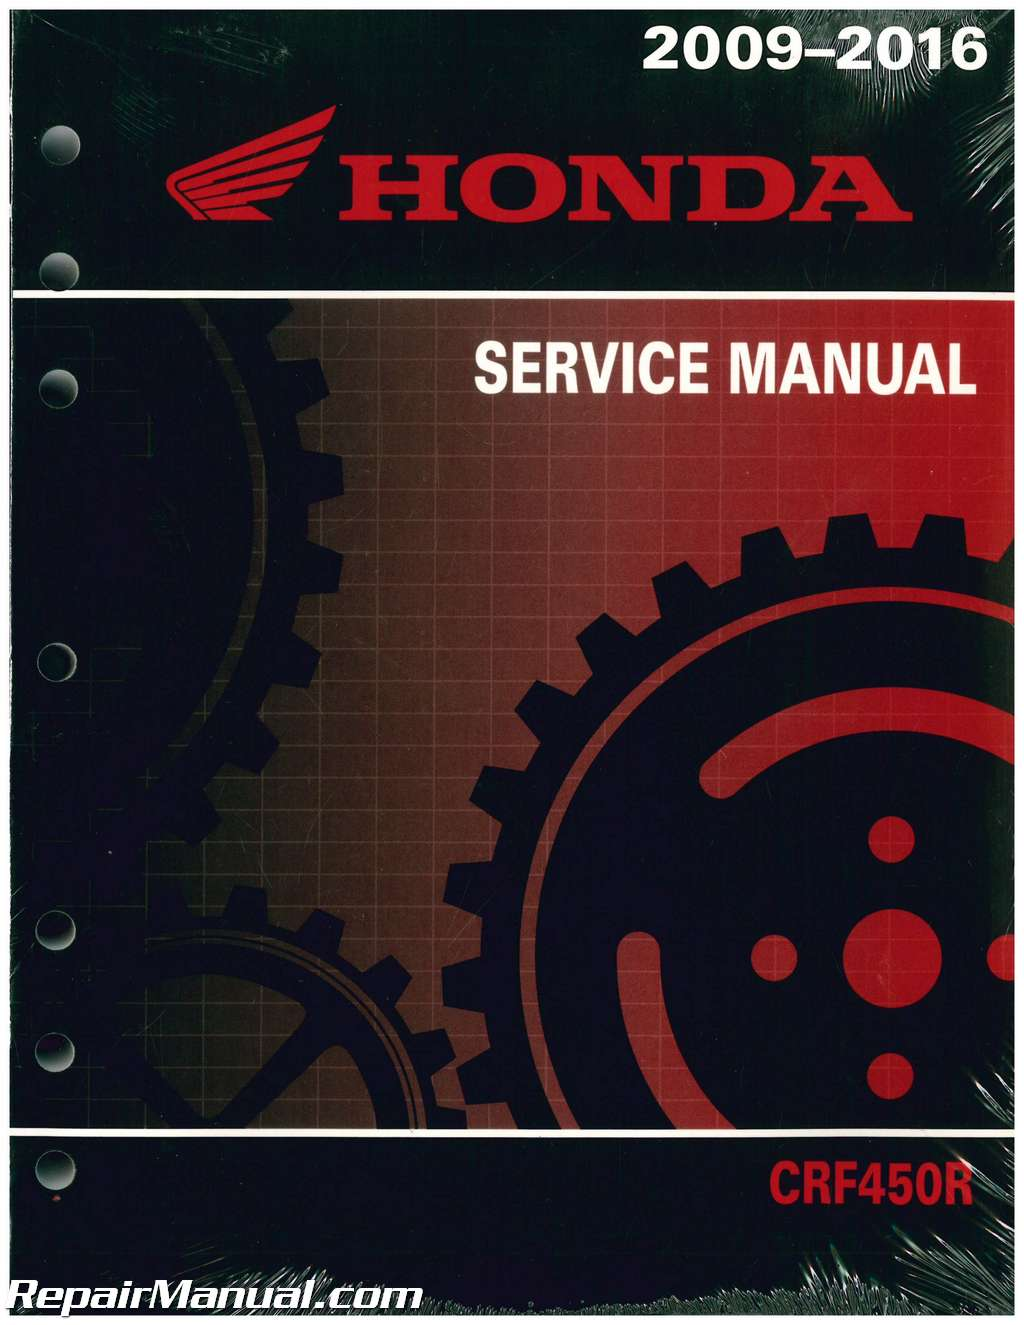 2009 2016 Honda CRF450R Motorcycle Service Manual